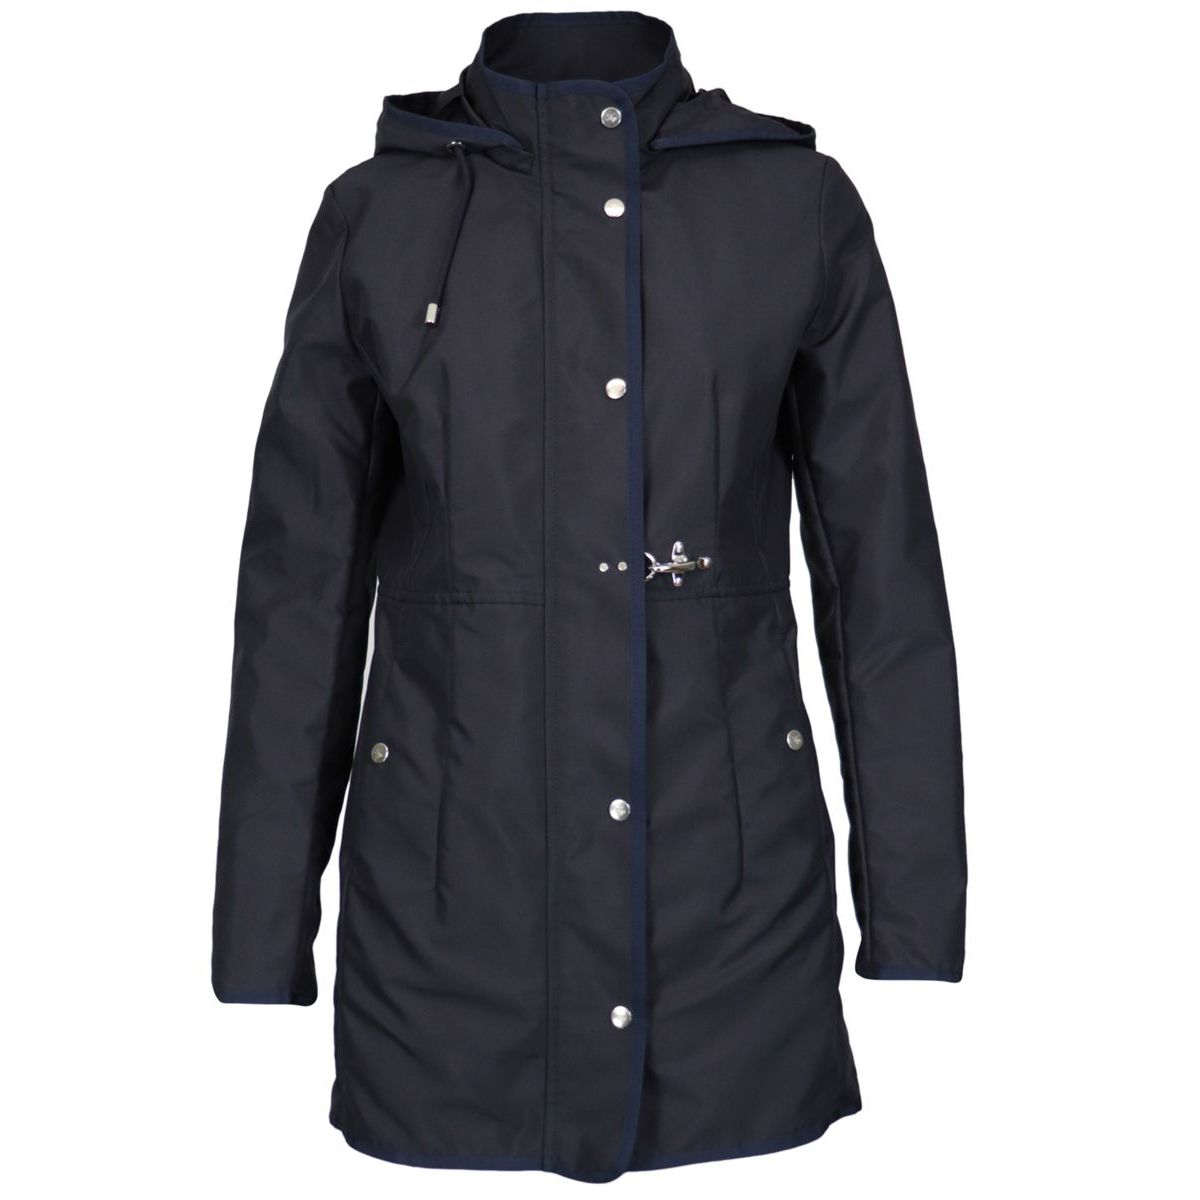 Waterproof nylon jacket with detachable hood Blue Fay